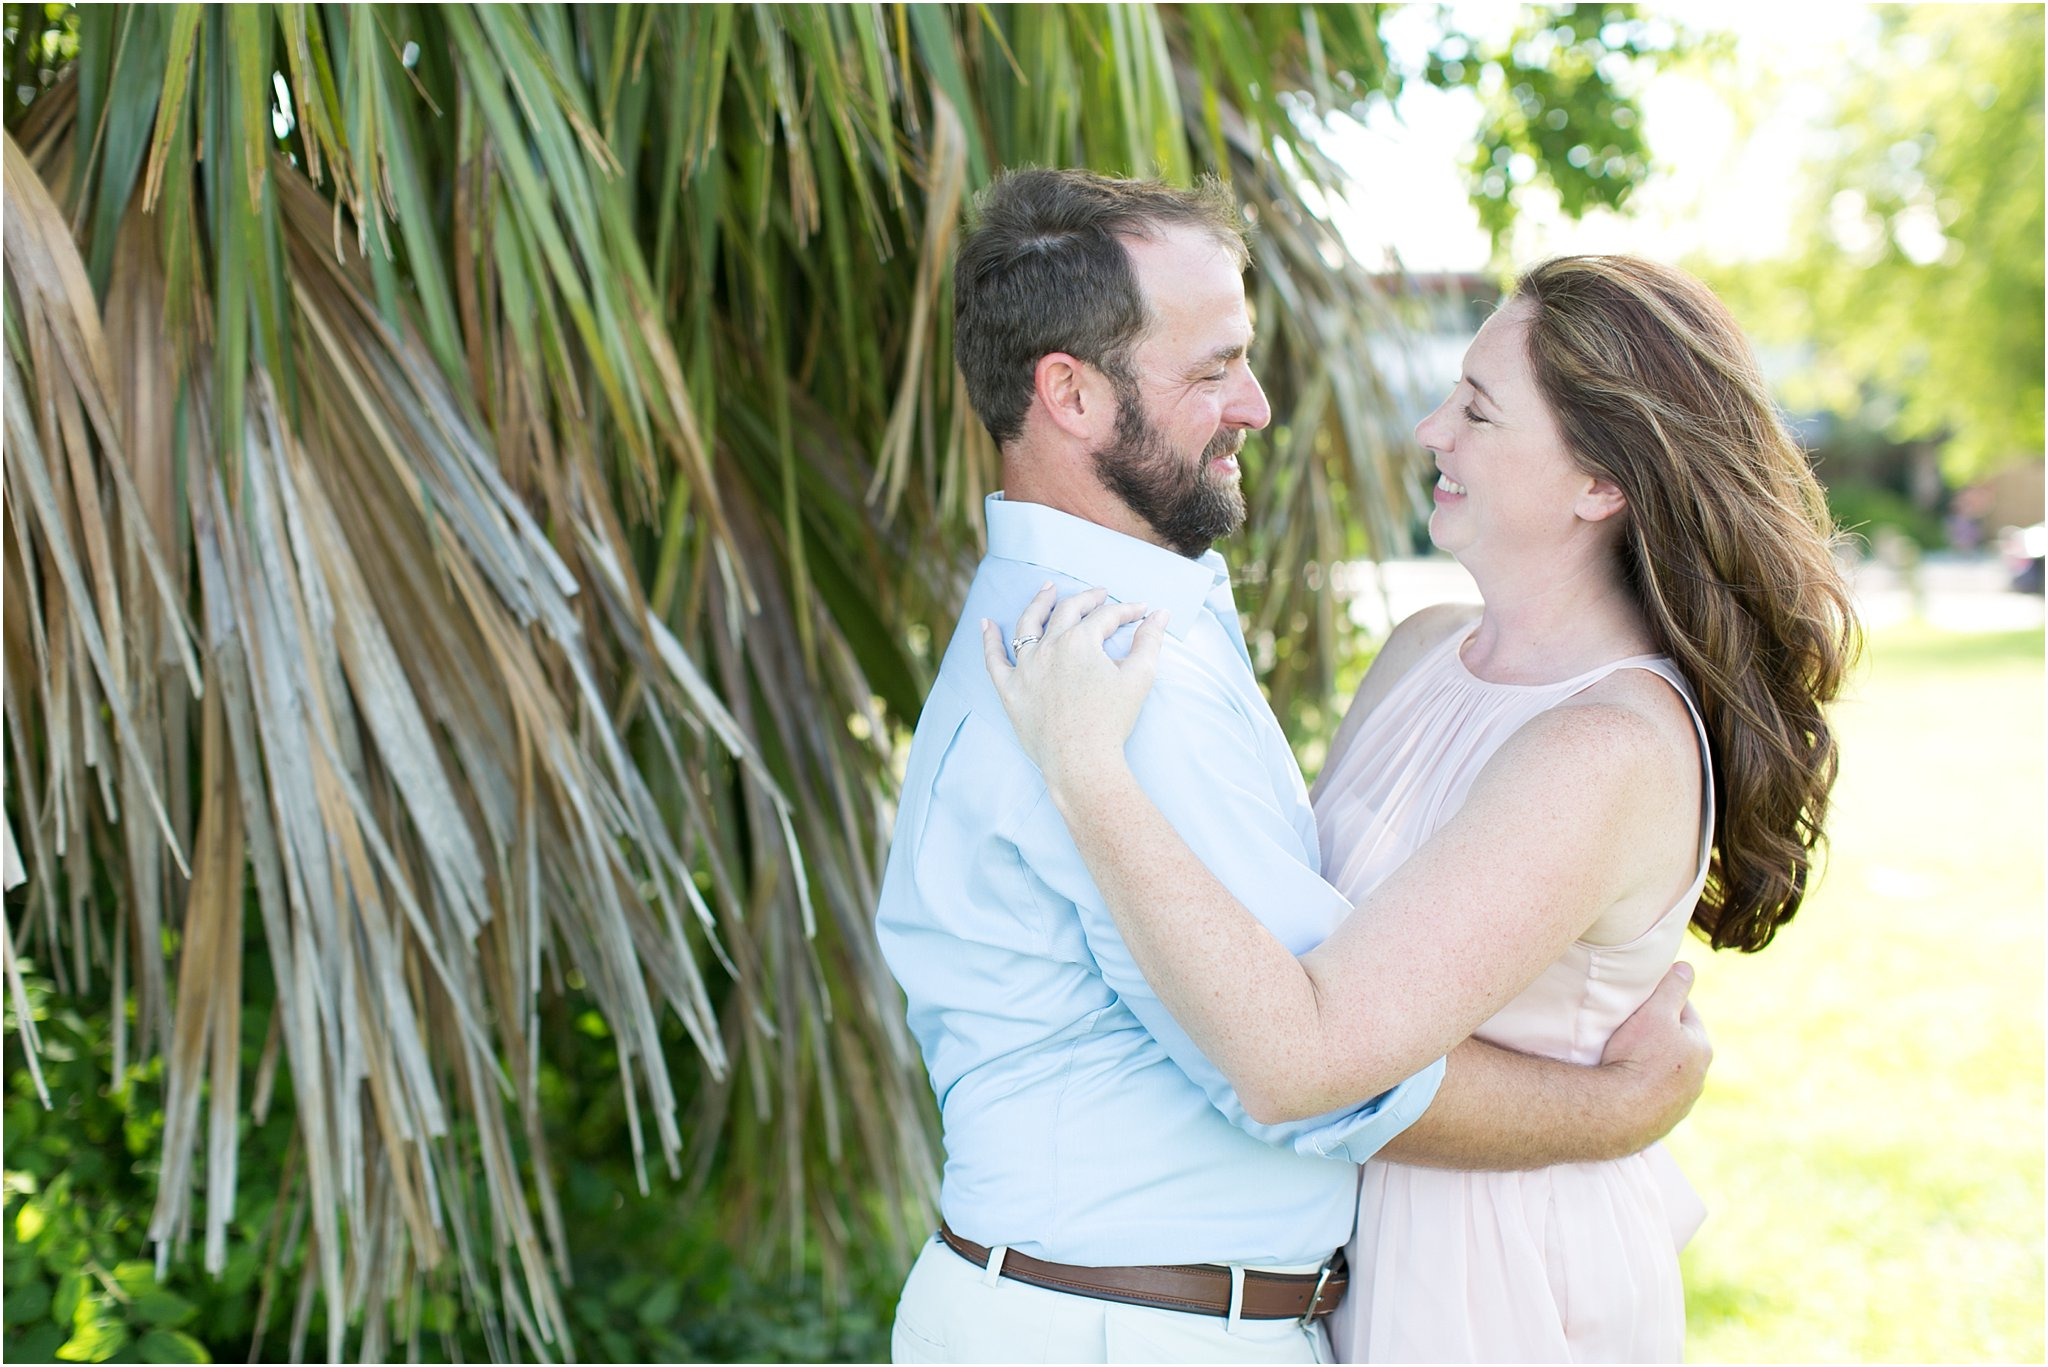 jessica_ryan_photography_wedding_photography_virginiabeach_virginia_candid_authentic_wedding_florida_wedding_photographer_amelia_island_fernandina_beach_1978